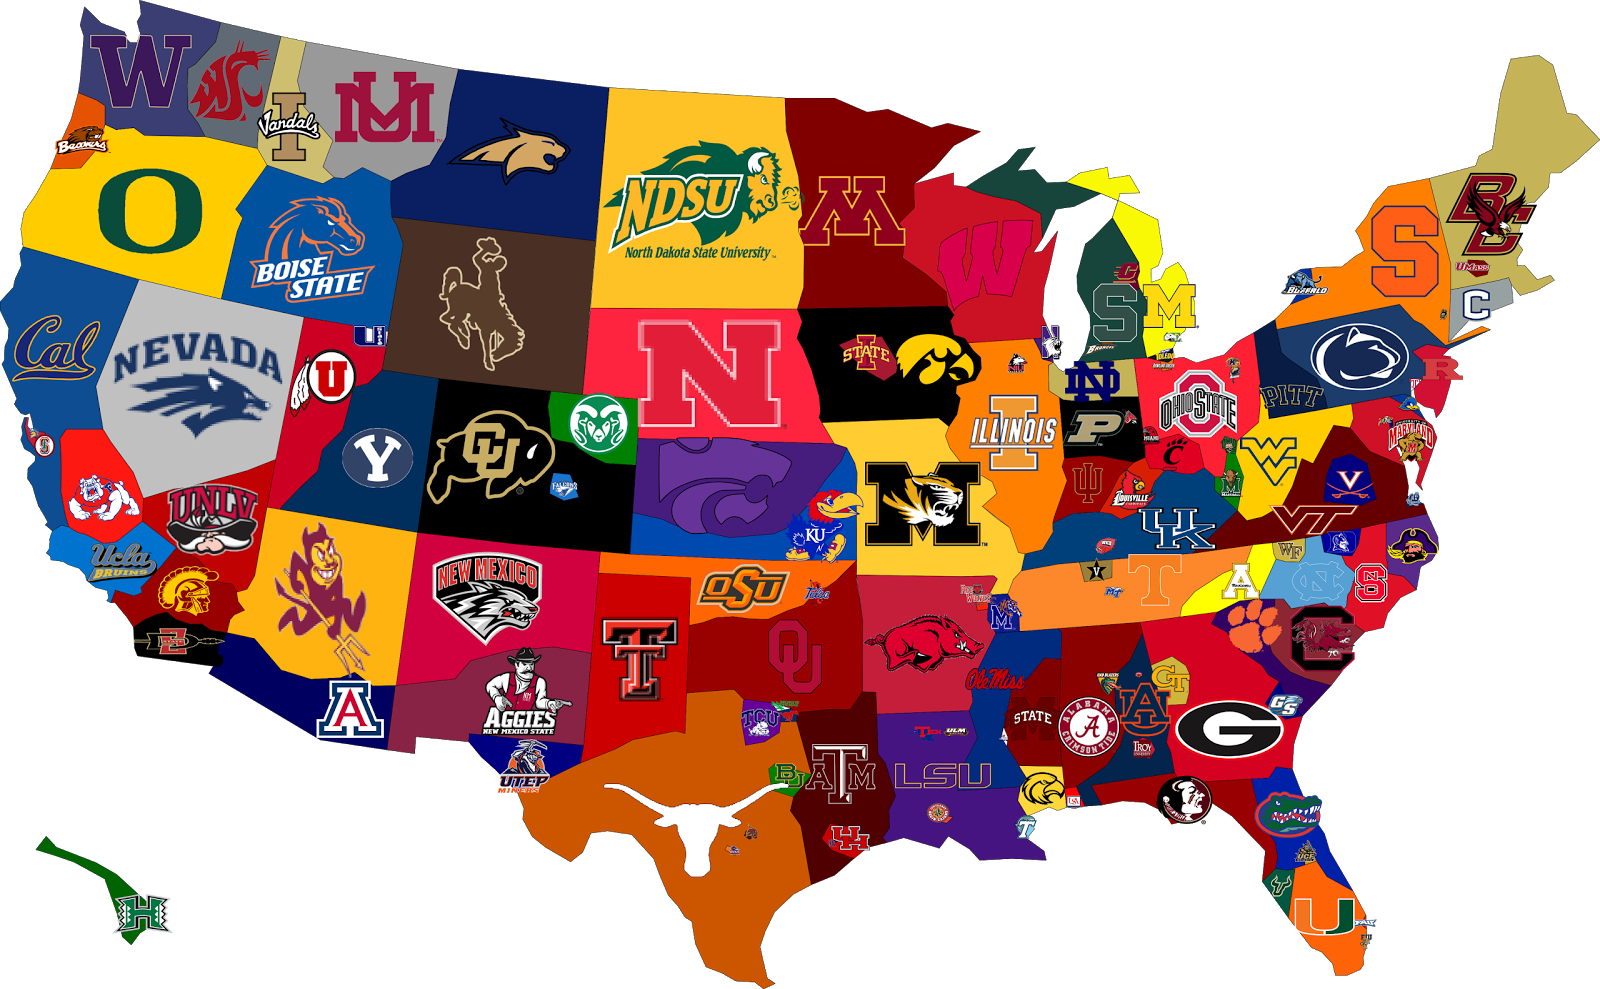 Roscommon to Imogene: College Football Fan Base Map